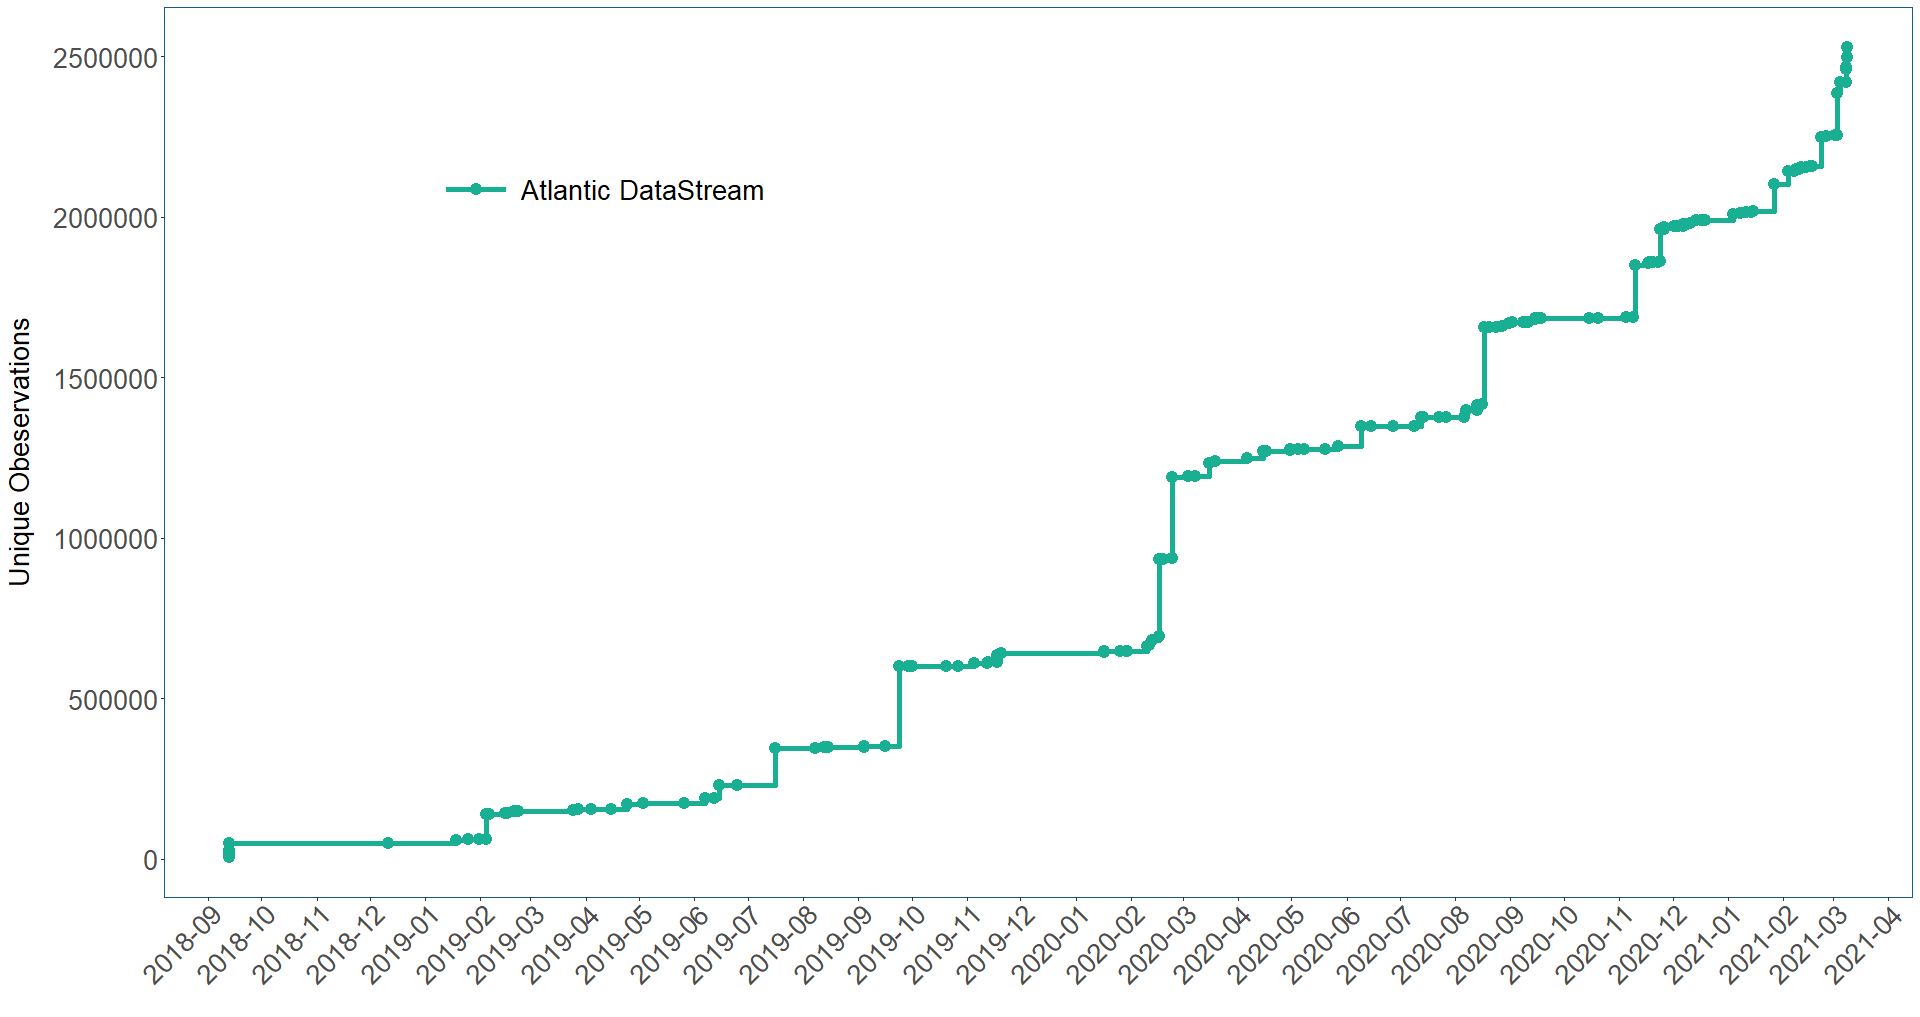 Graph showing increase of data on Atlantic DataStream